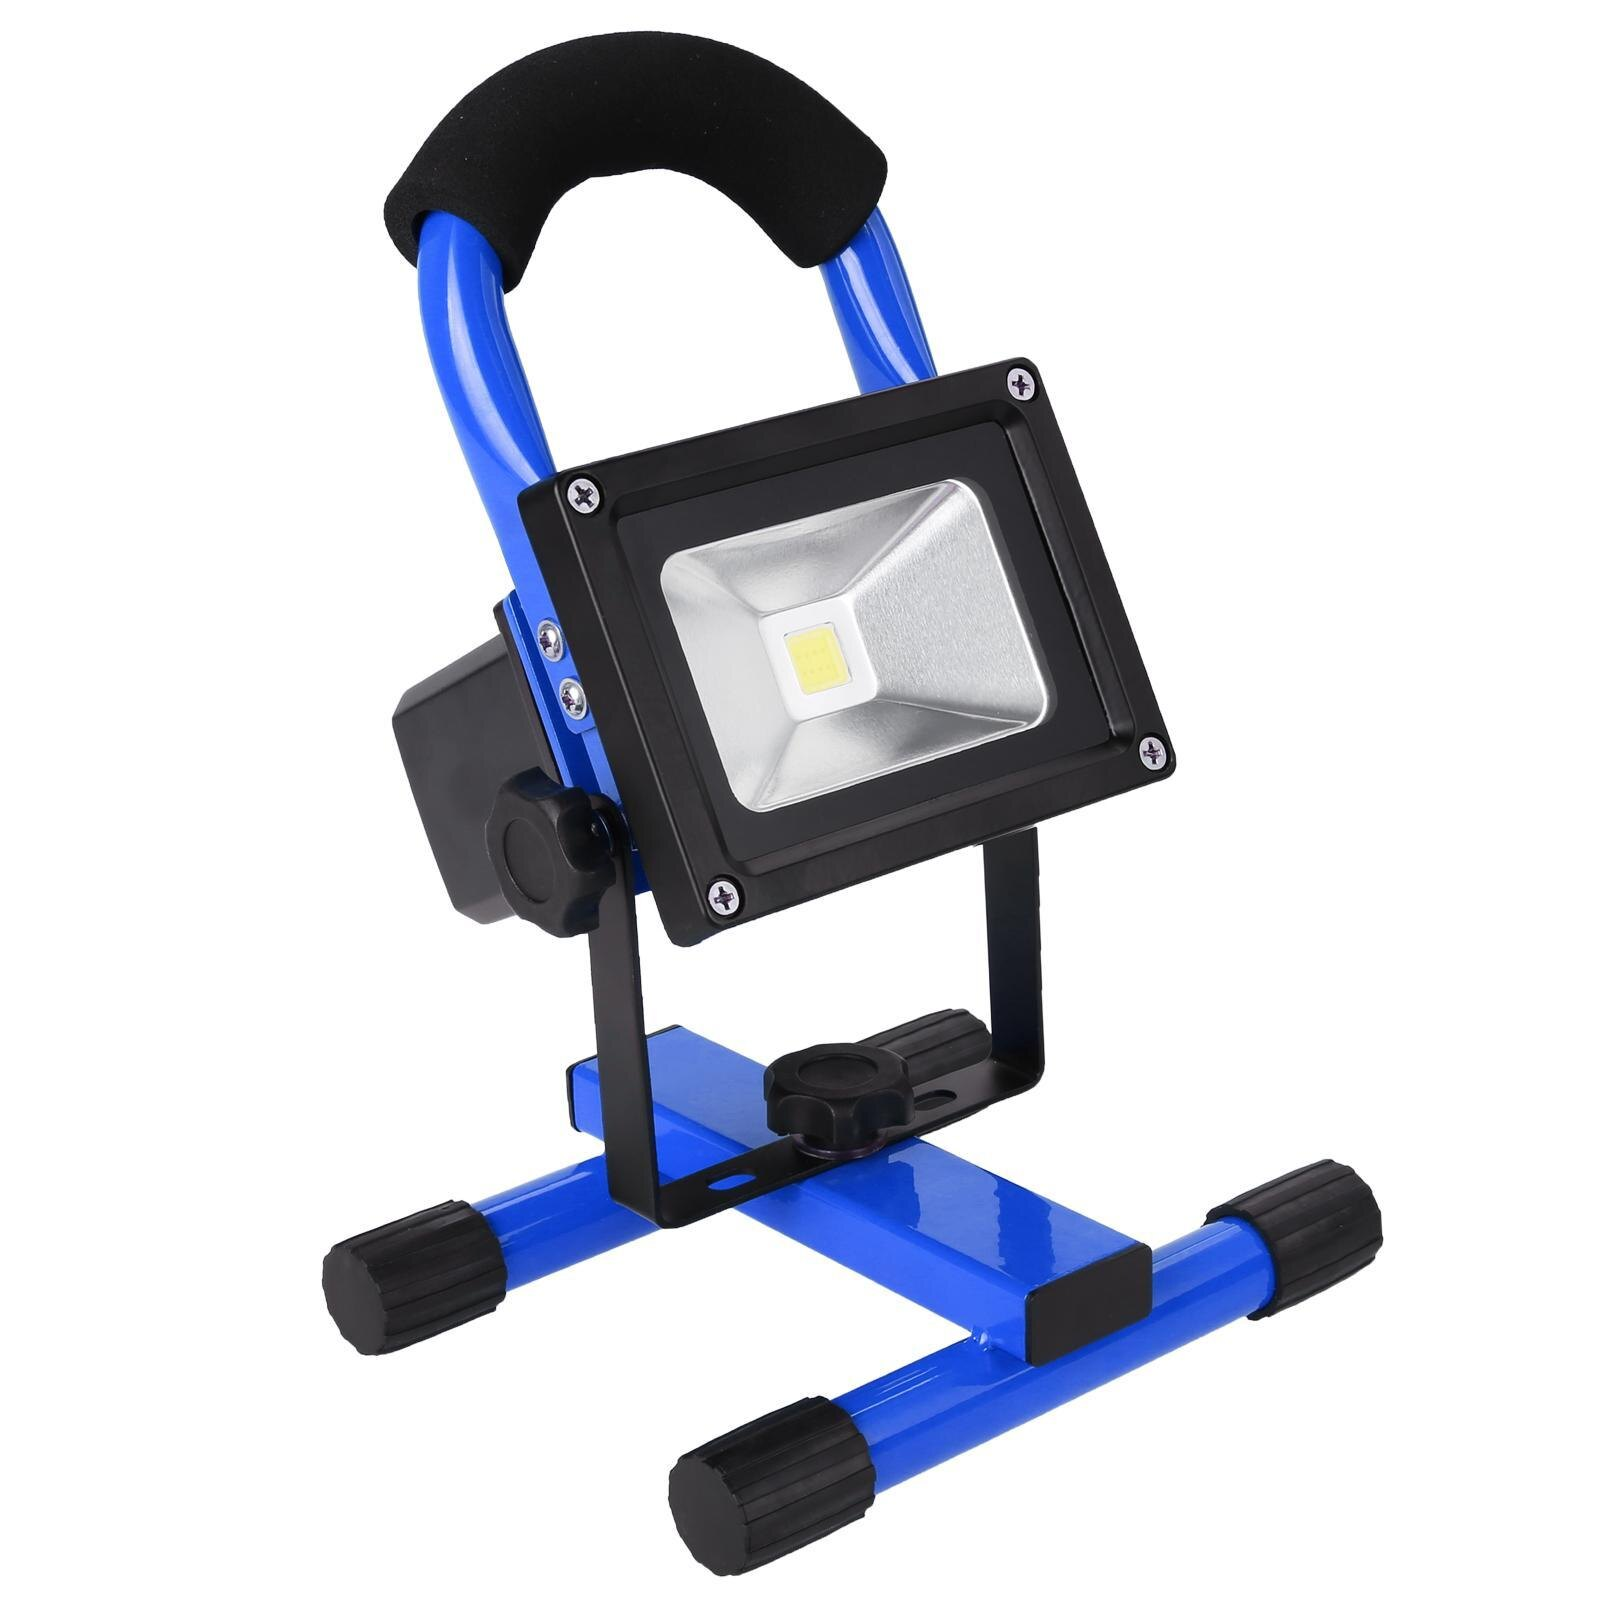 10W Wireless Rechargeable LED Flood Light Outdoor Camping Hiking Lamp 0